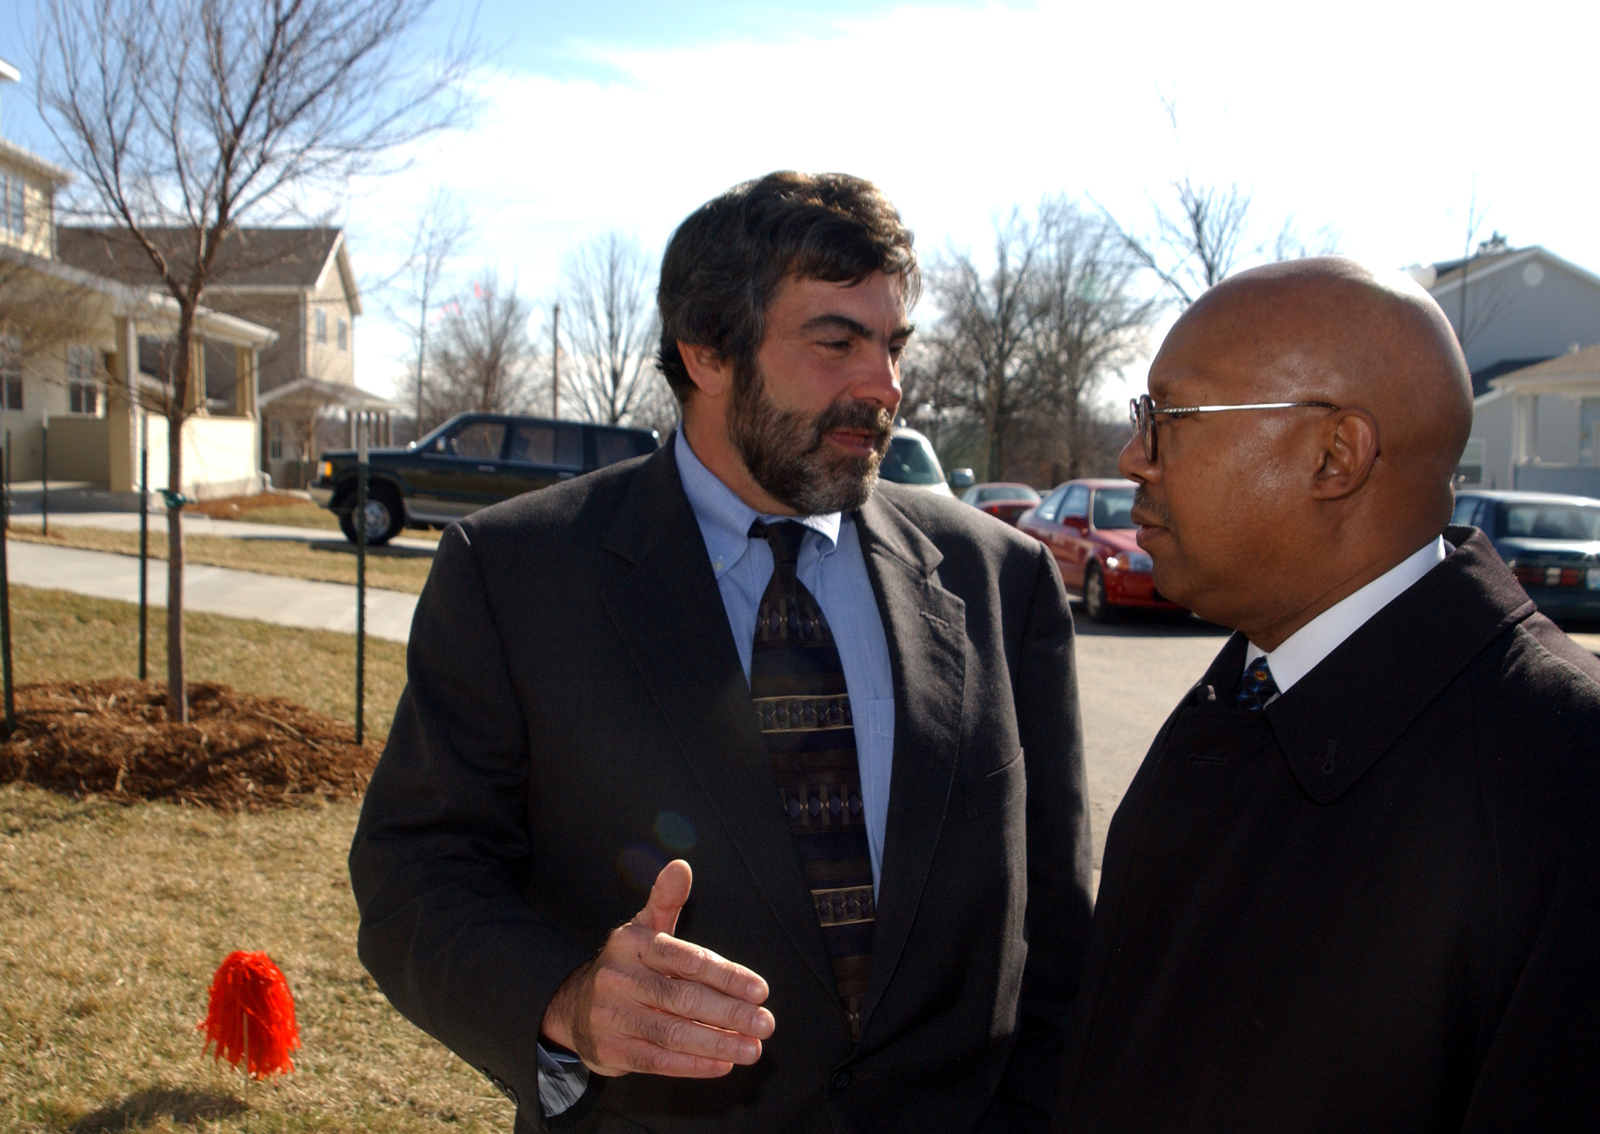 Deputy Secretary Alphonso Jackson in Kansas City, Missouri